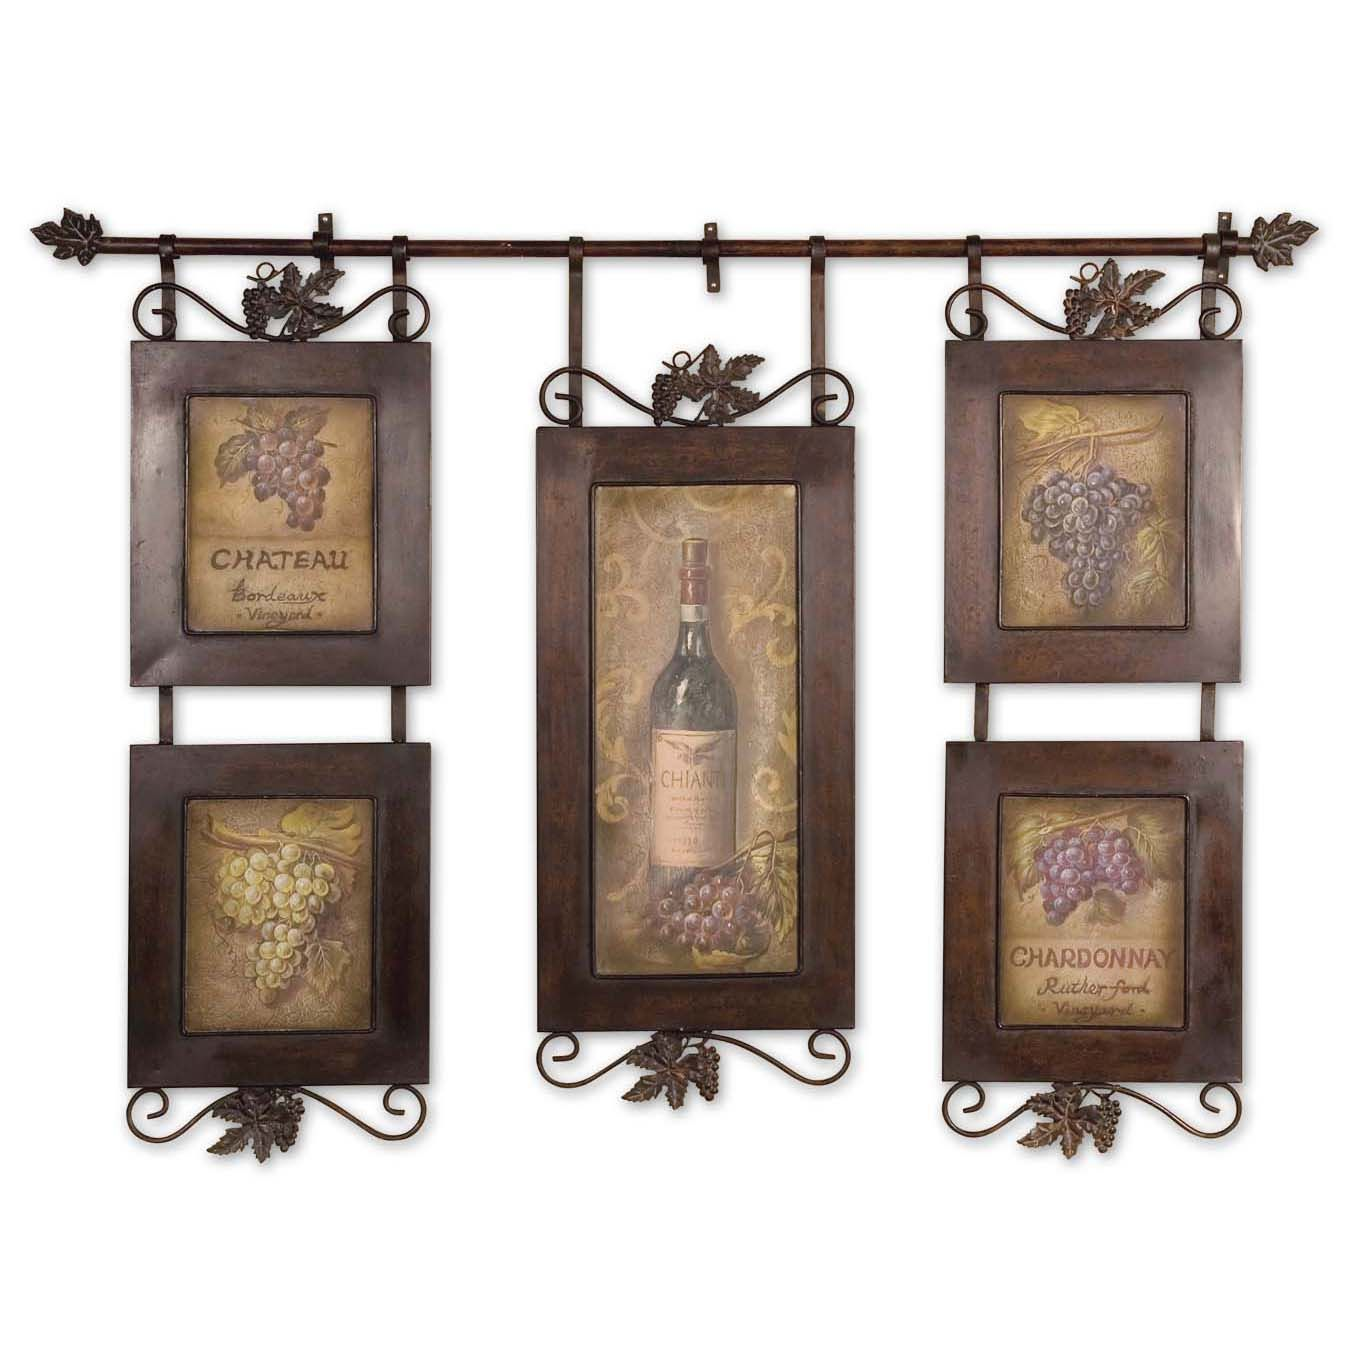 Show your love for contemporary art and improve your home's decor with this 'Hanging Wine' framed art. This item features five oil paintings and a lovely metal frame. The rustic look allows this art to blend in with your furniture and other decorations.